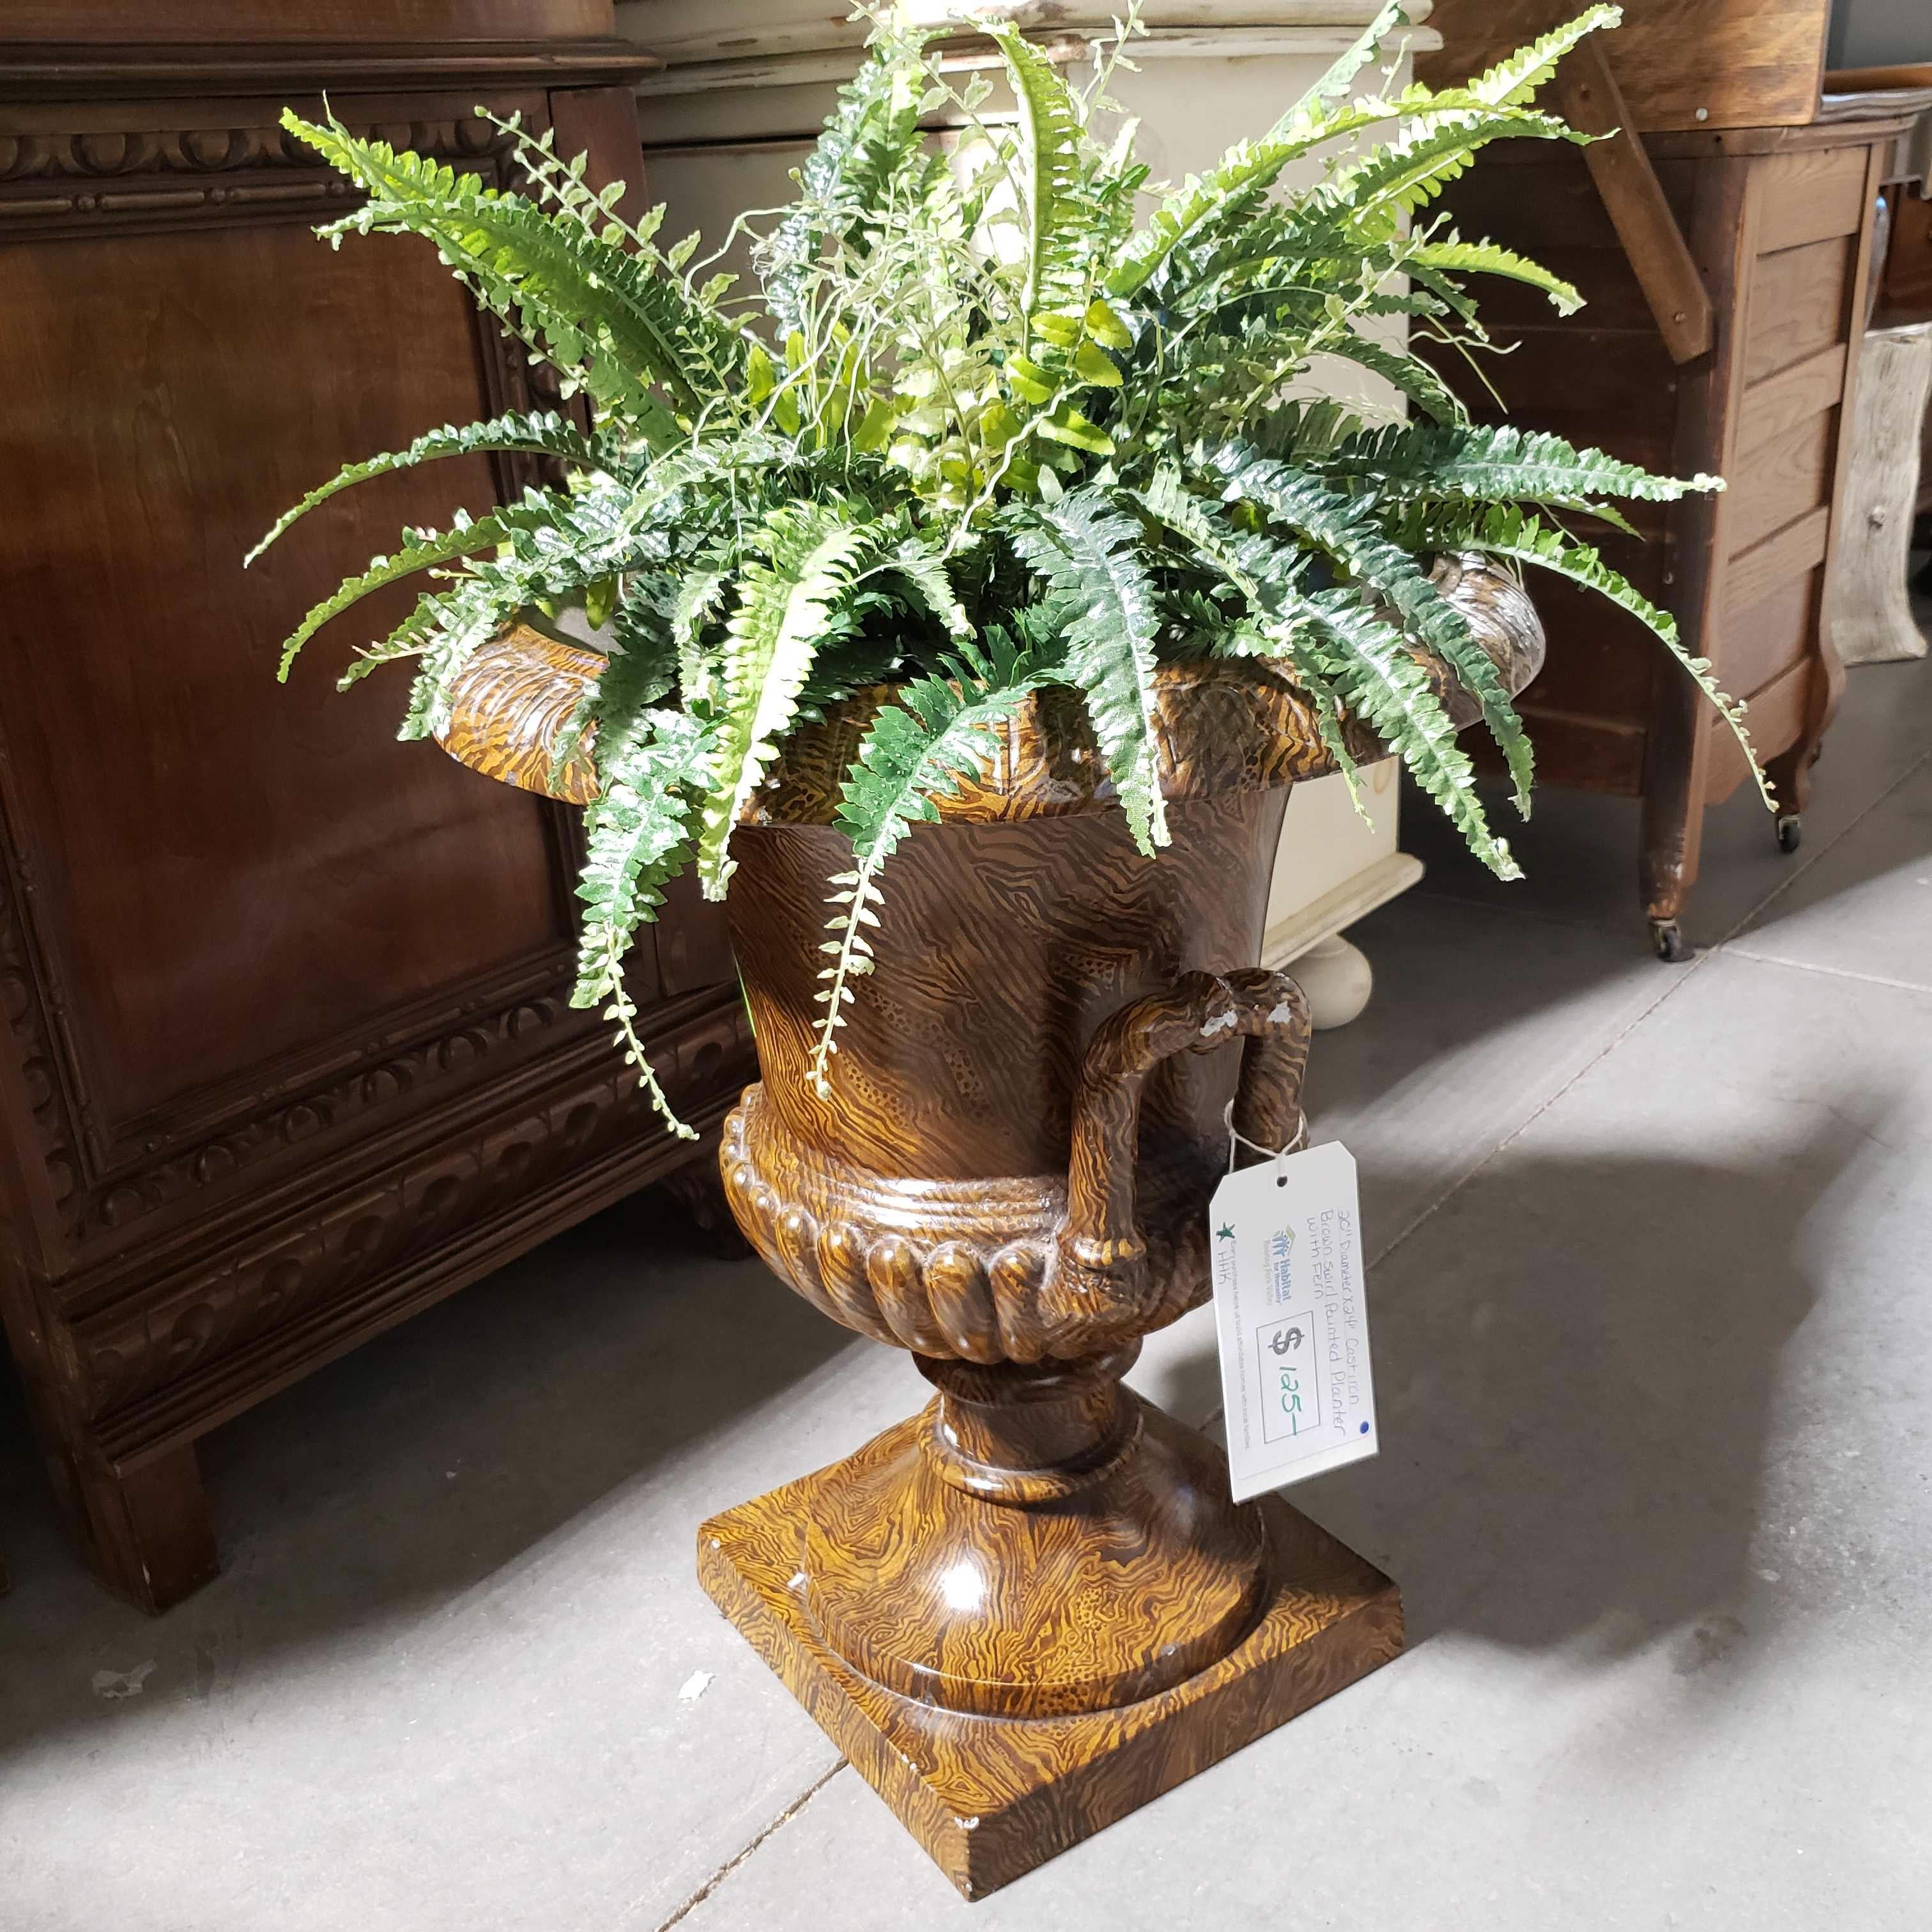 "20""x 24"" Diameter Cast Iron Brown Swirl Painted Planter with Fern"